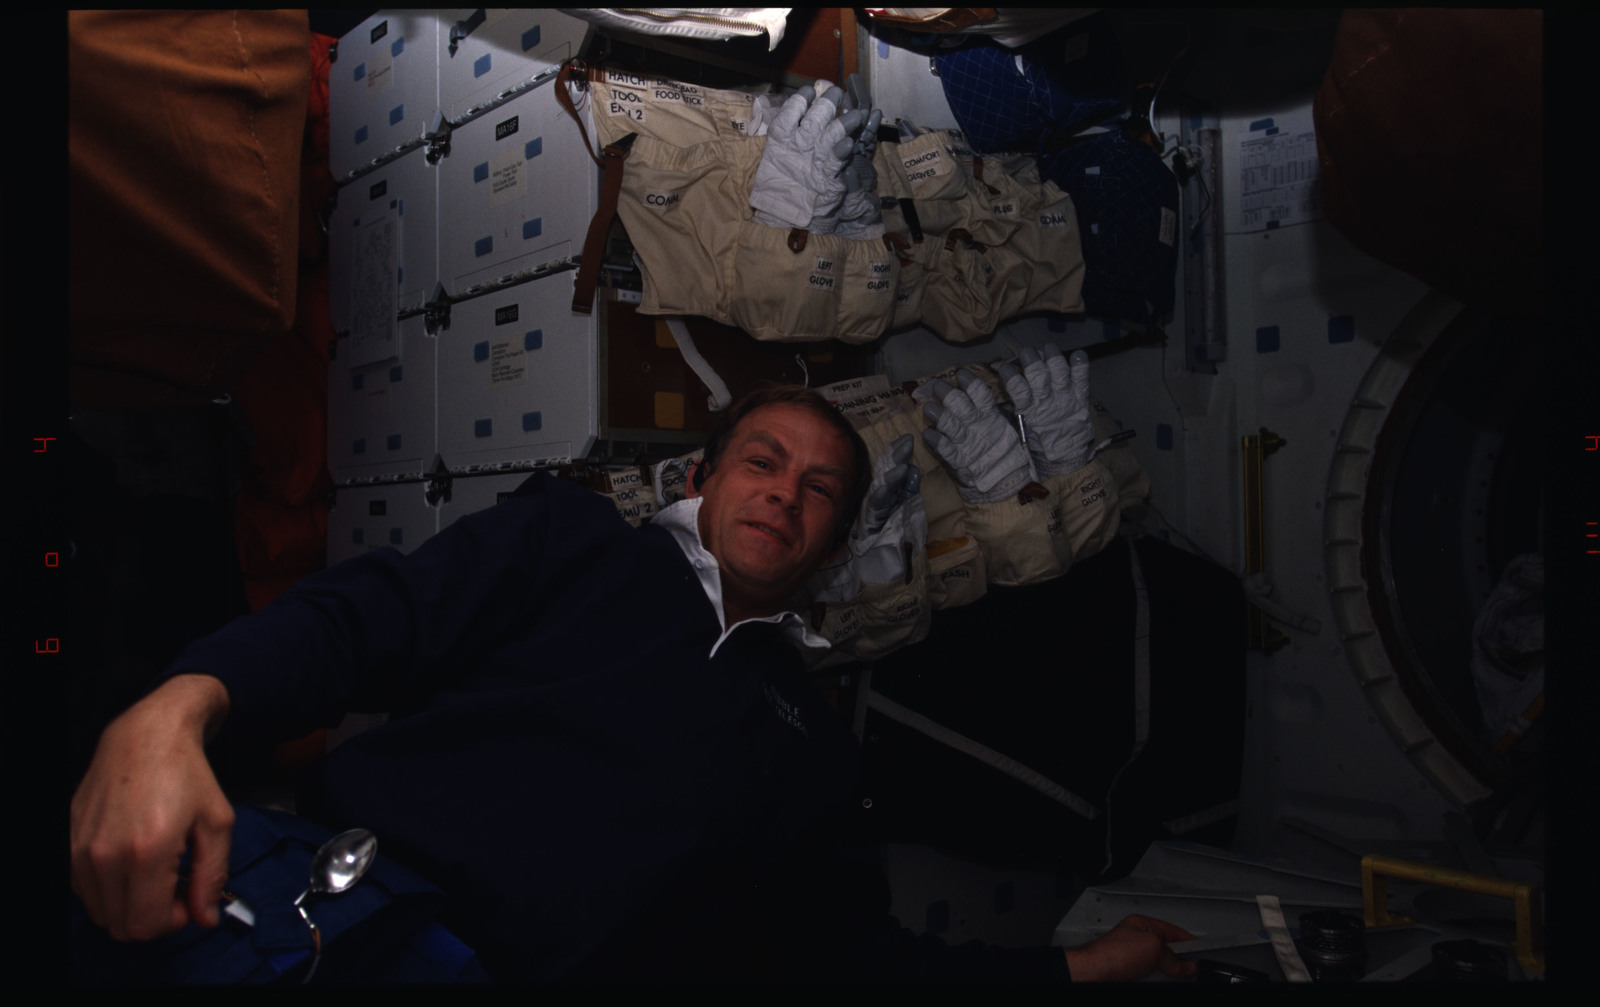 STS082-333-019 - STS-082 - Crewmember activities in the shuttle middeck and flight deck